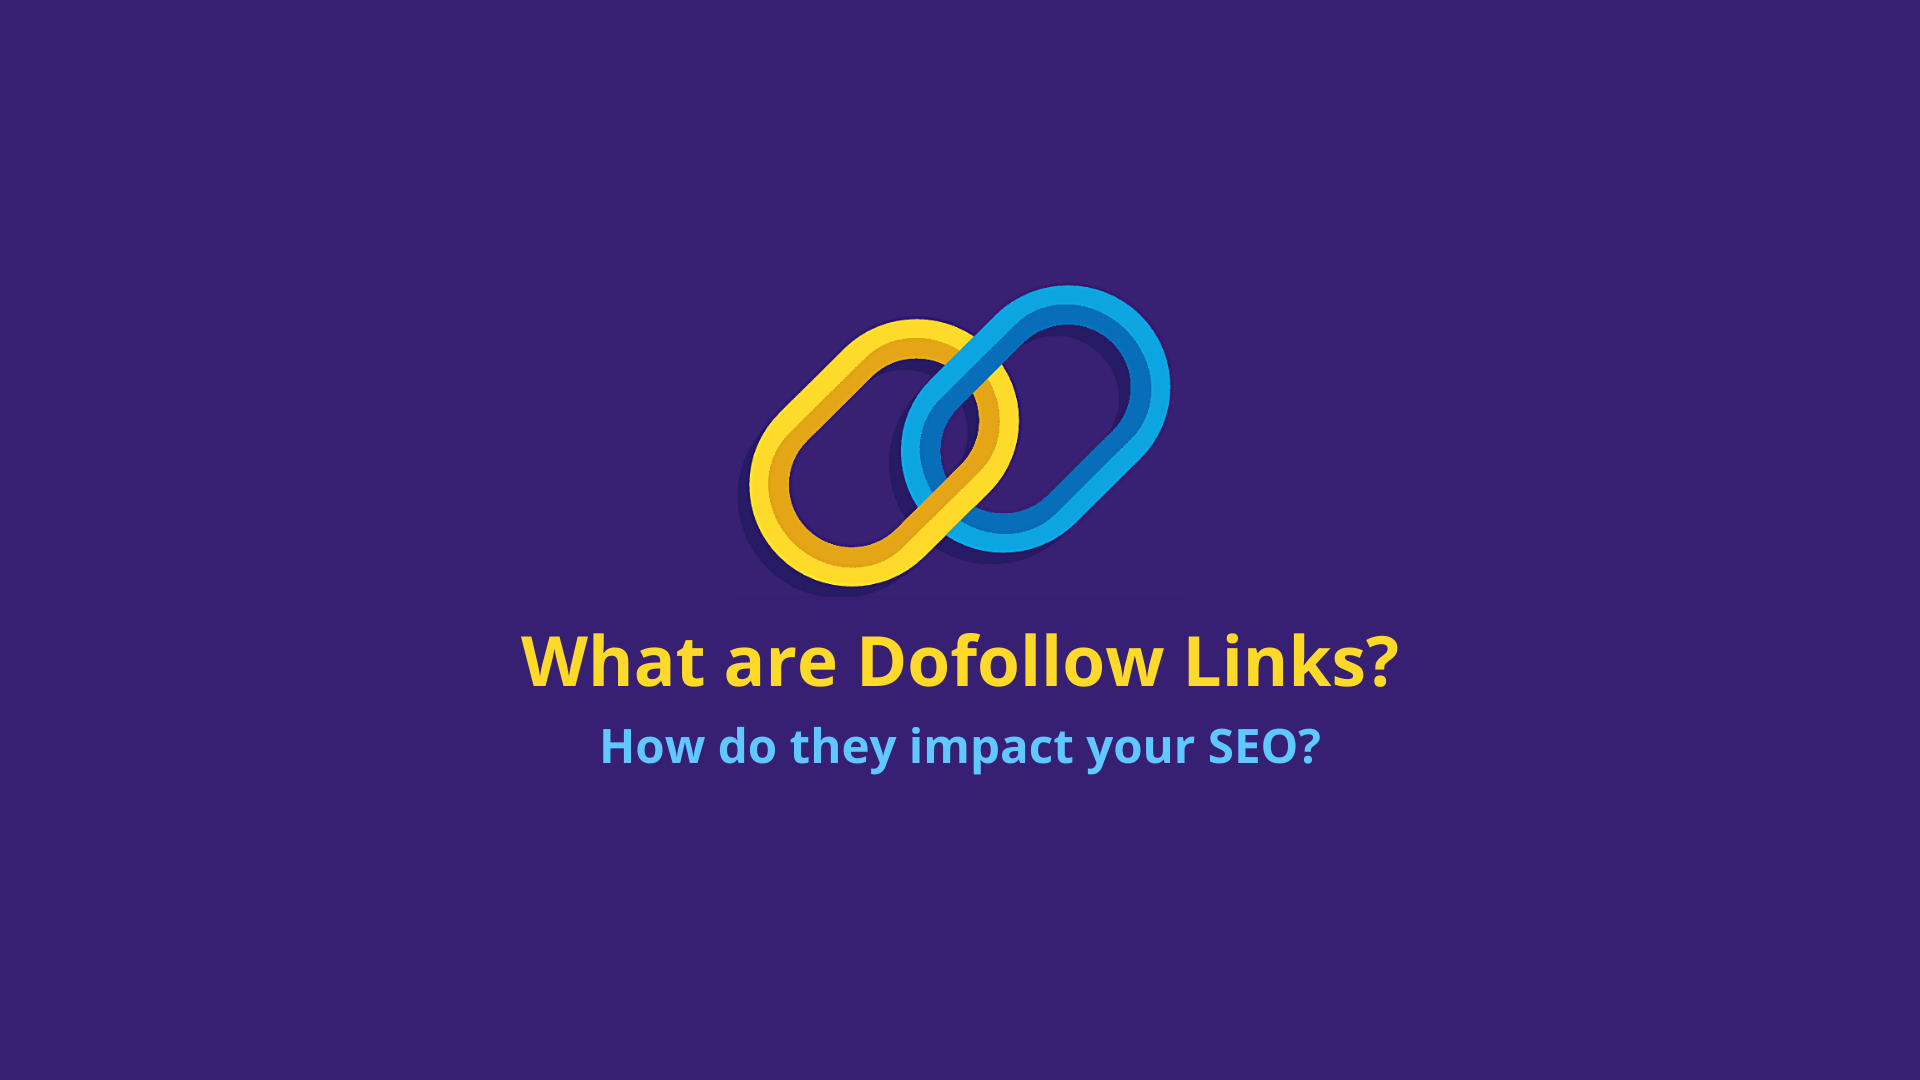 What are Dofollow Links?